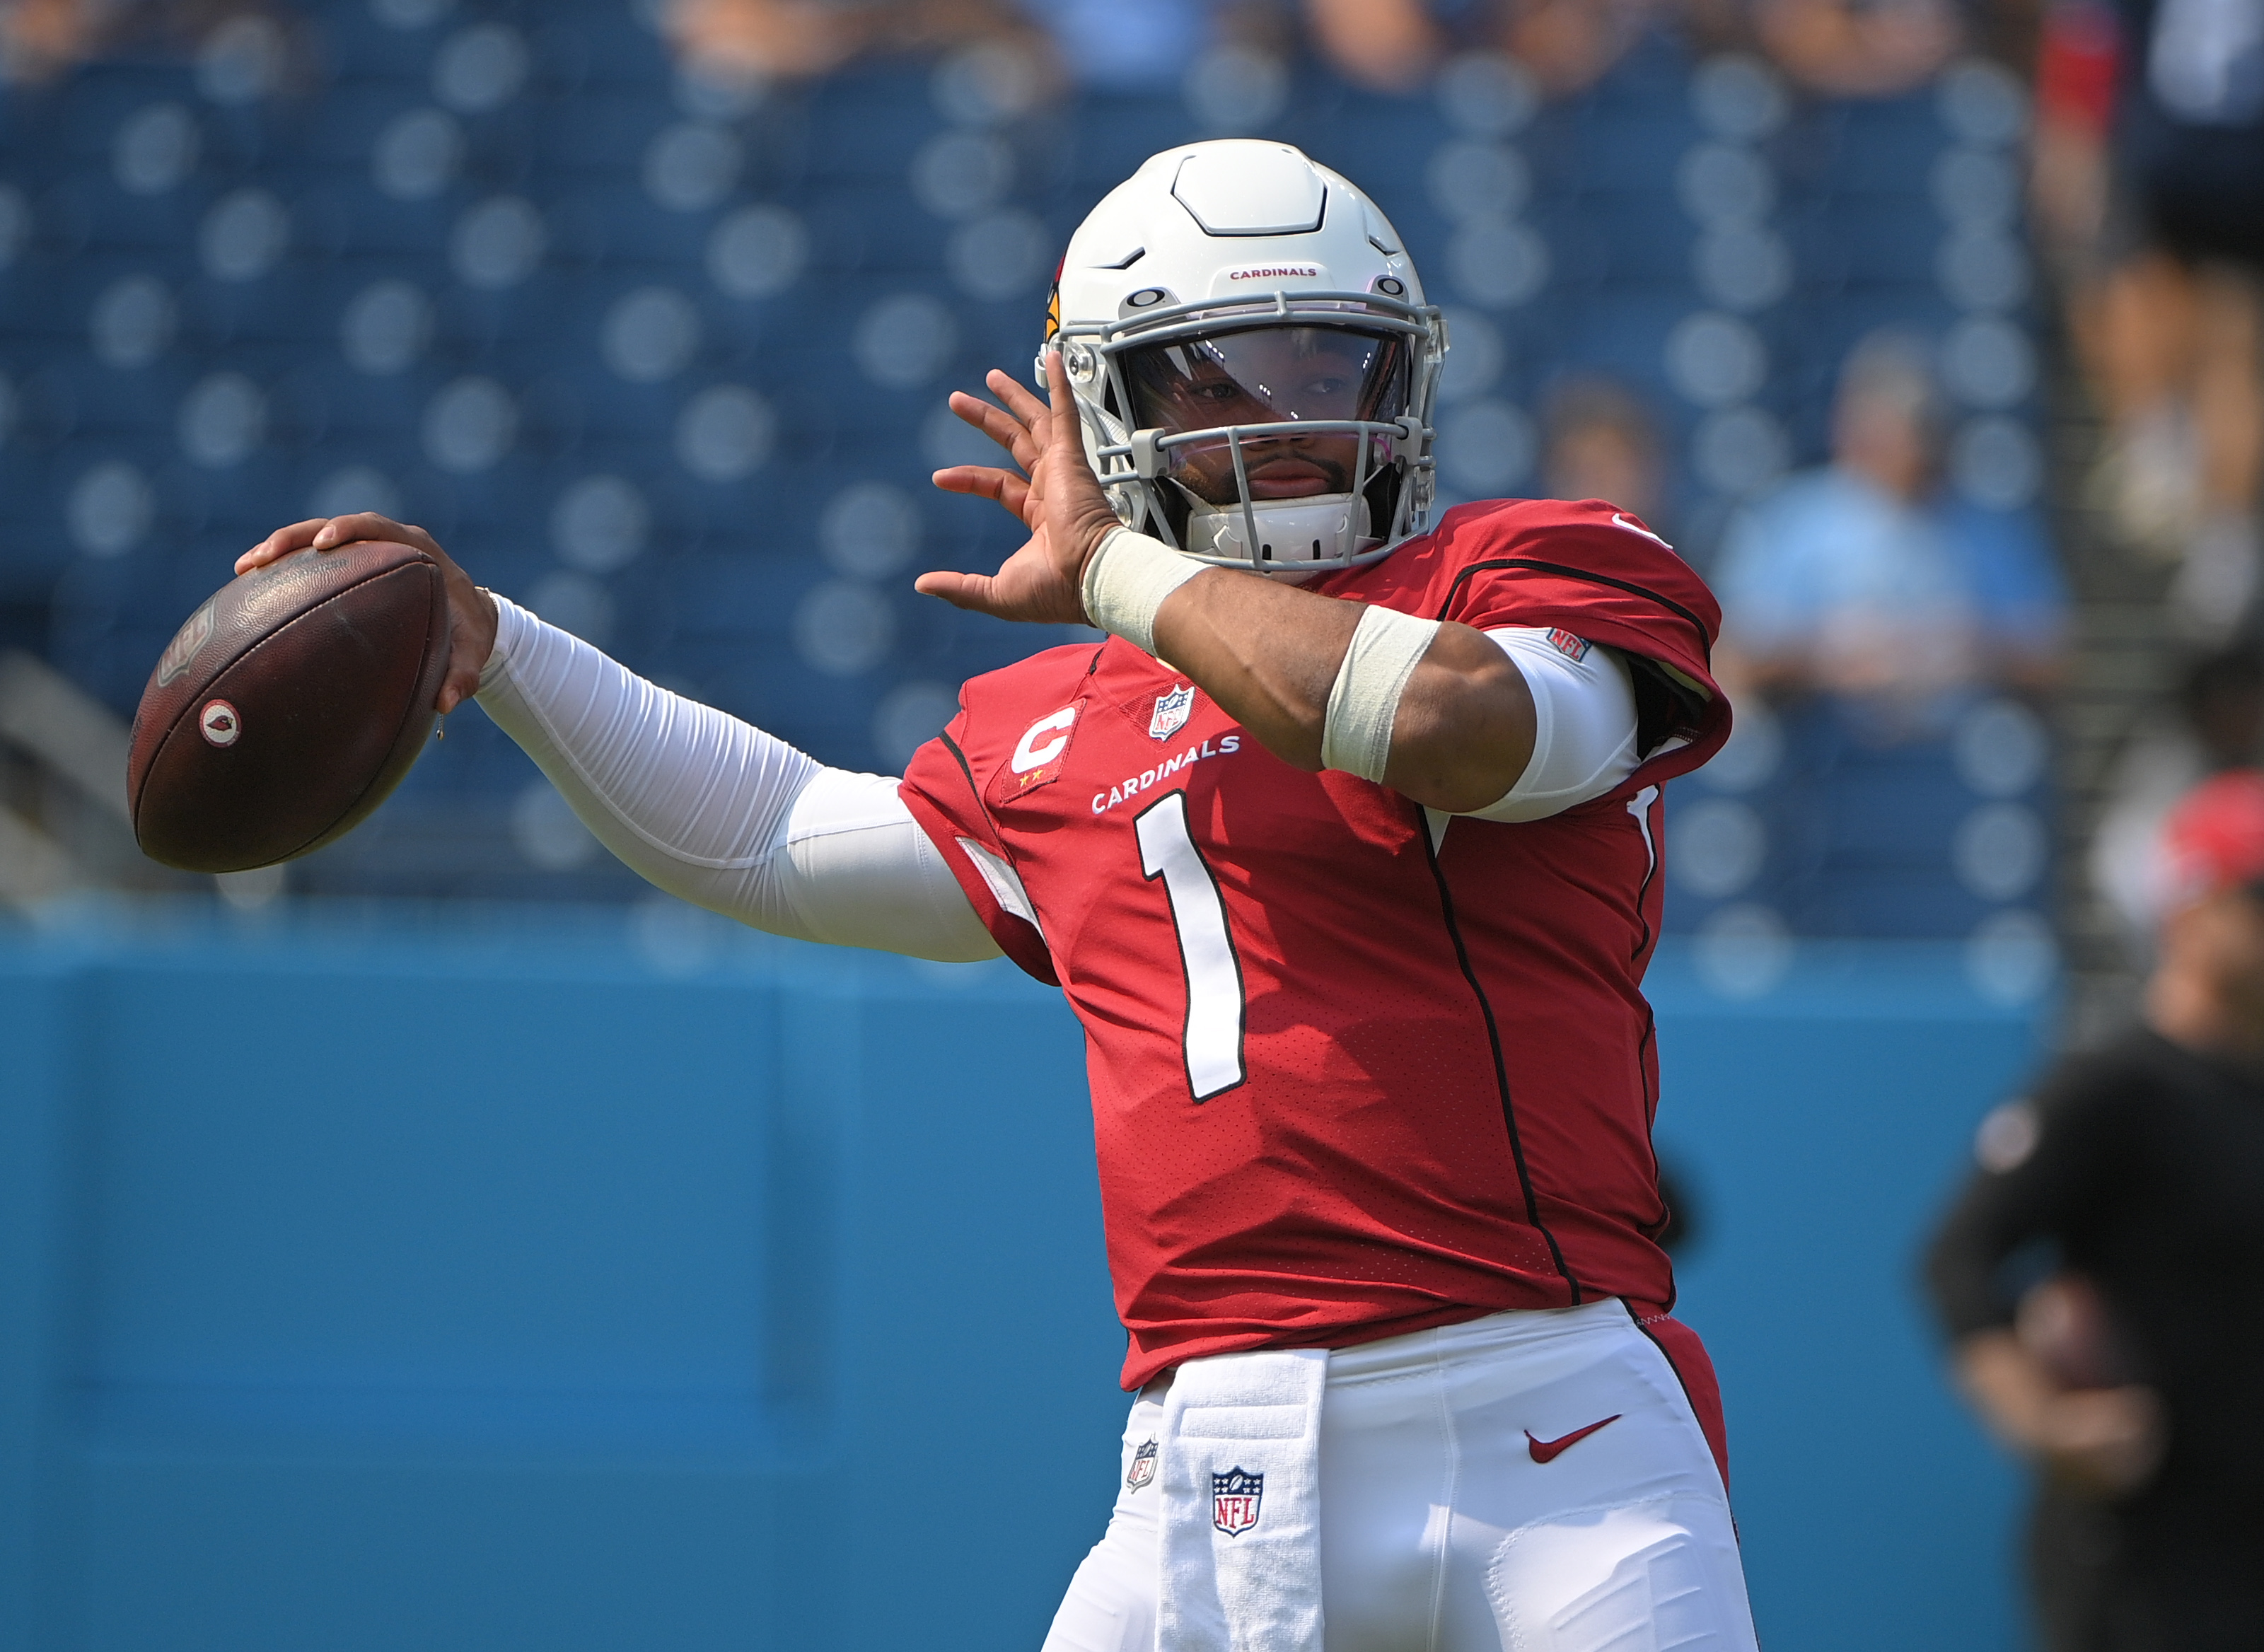 Top five NFL offensive performers from Week 1